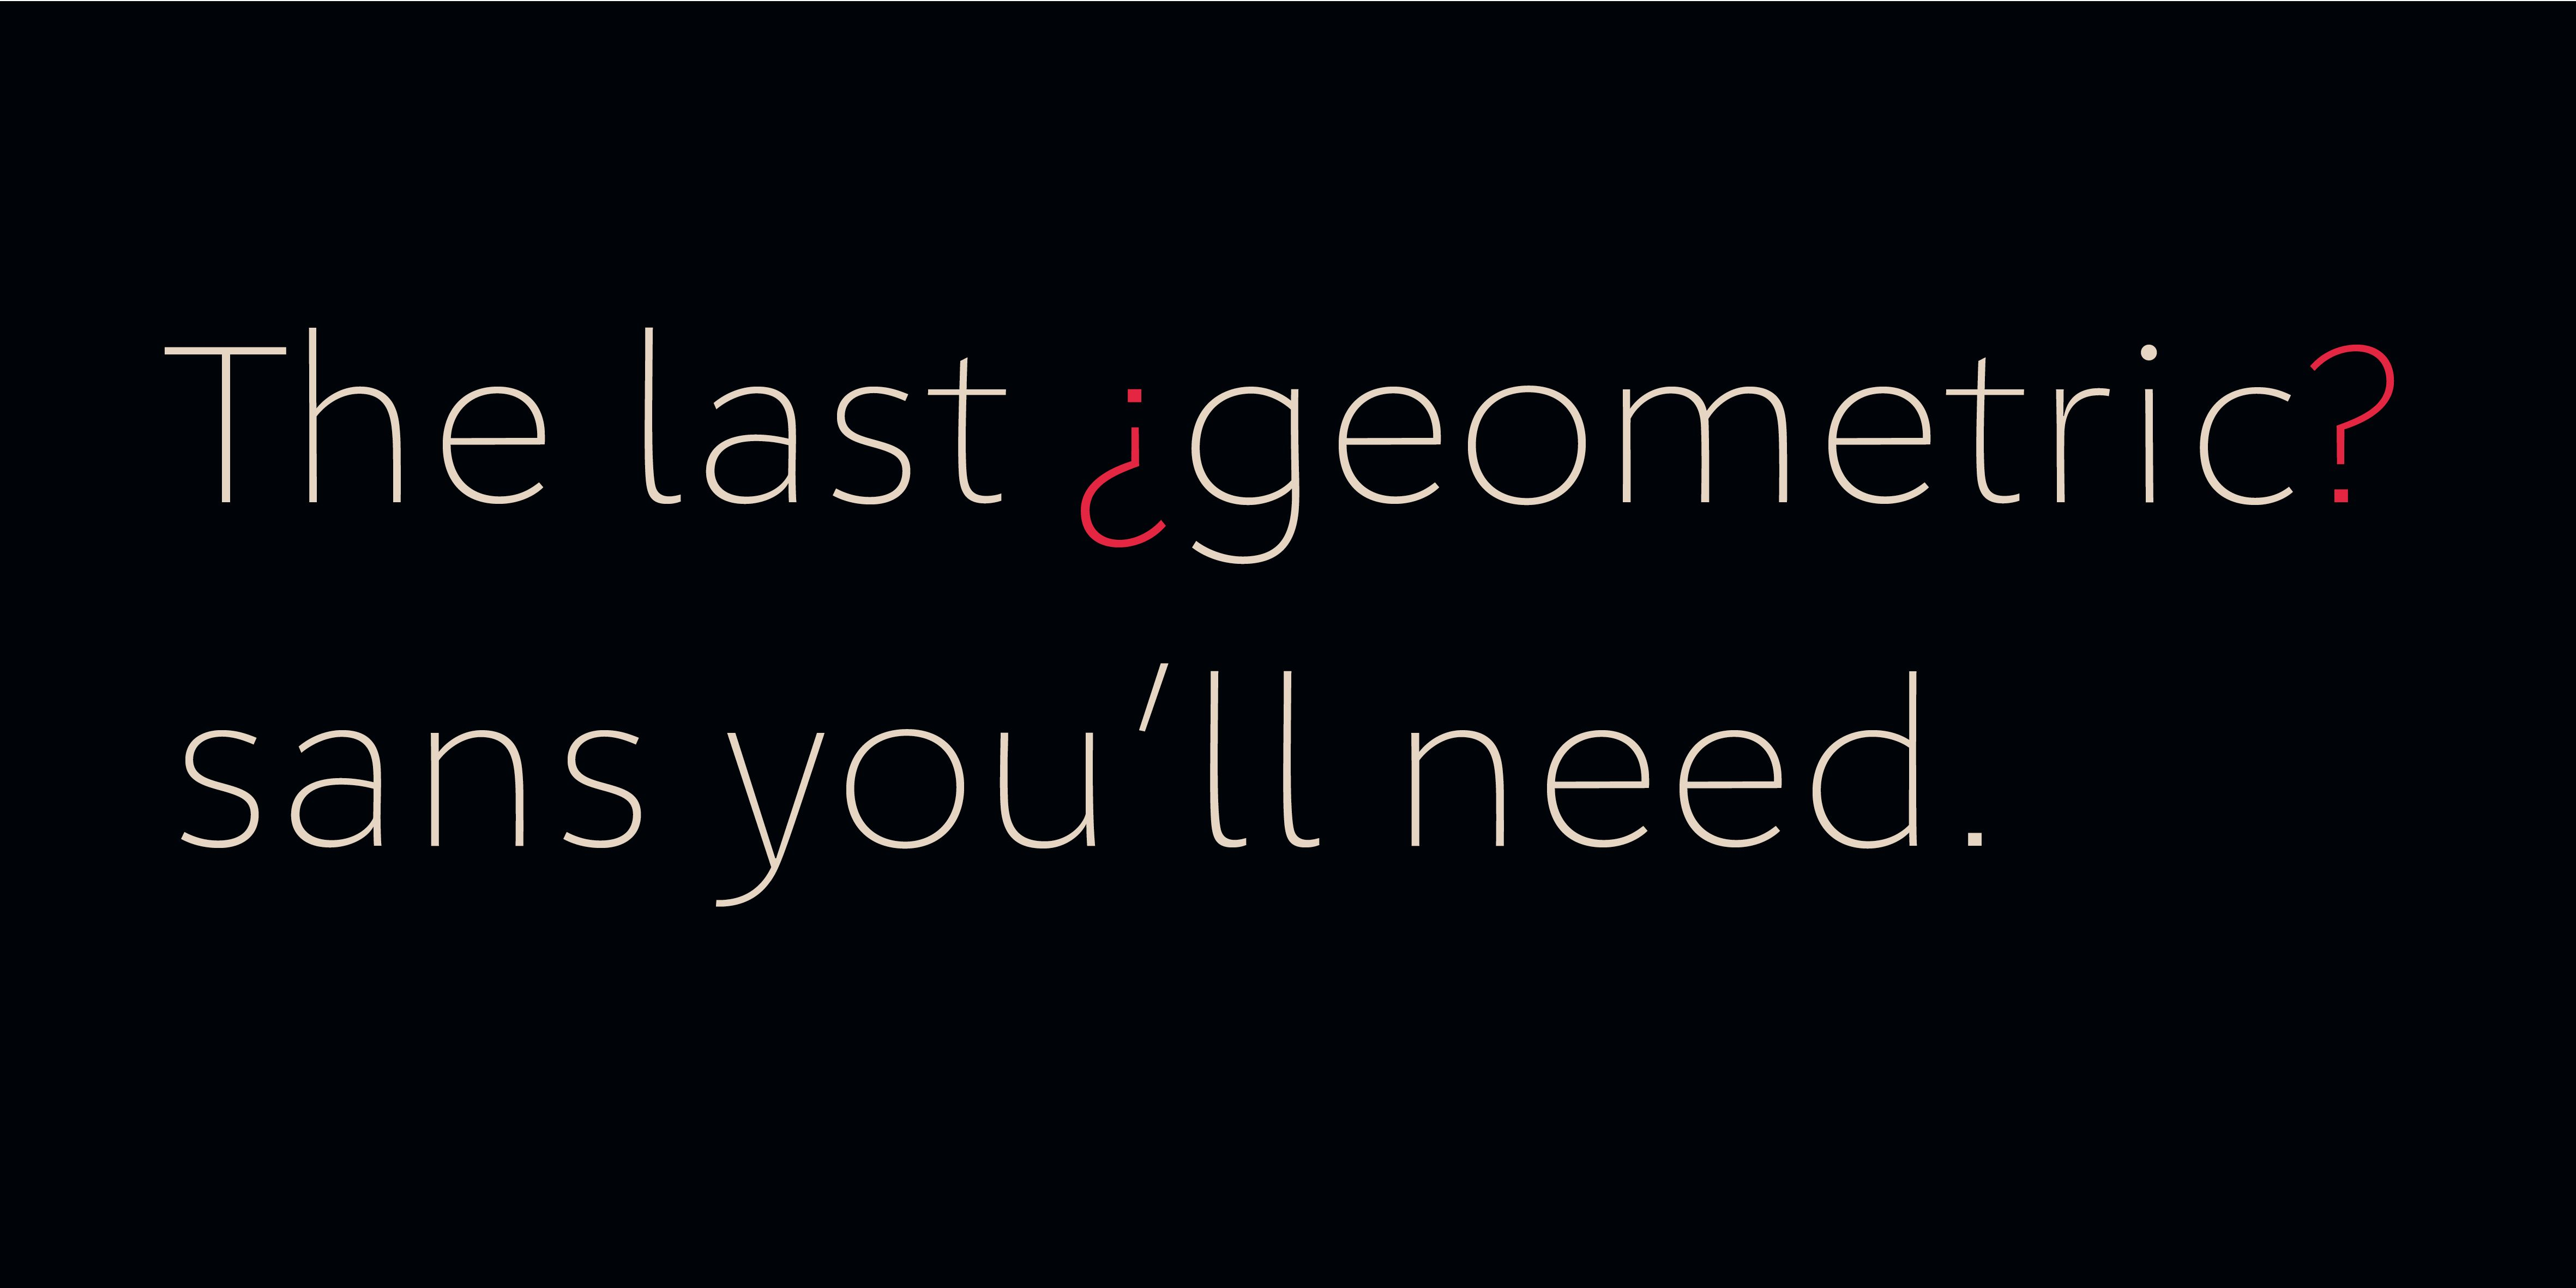 Poster, saying: The last geometric sans you'll need